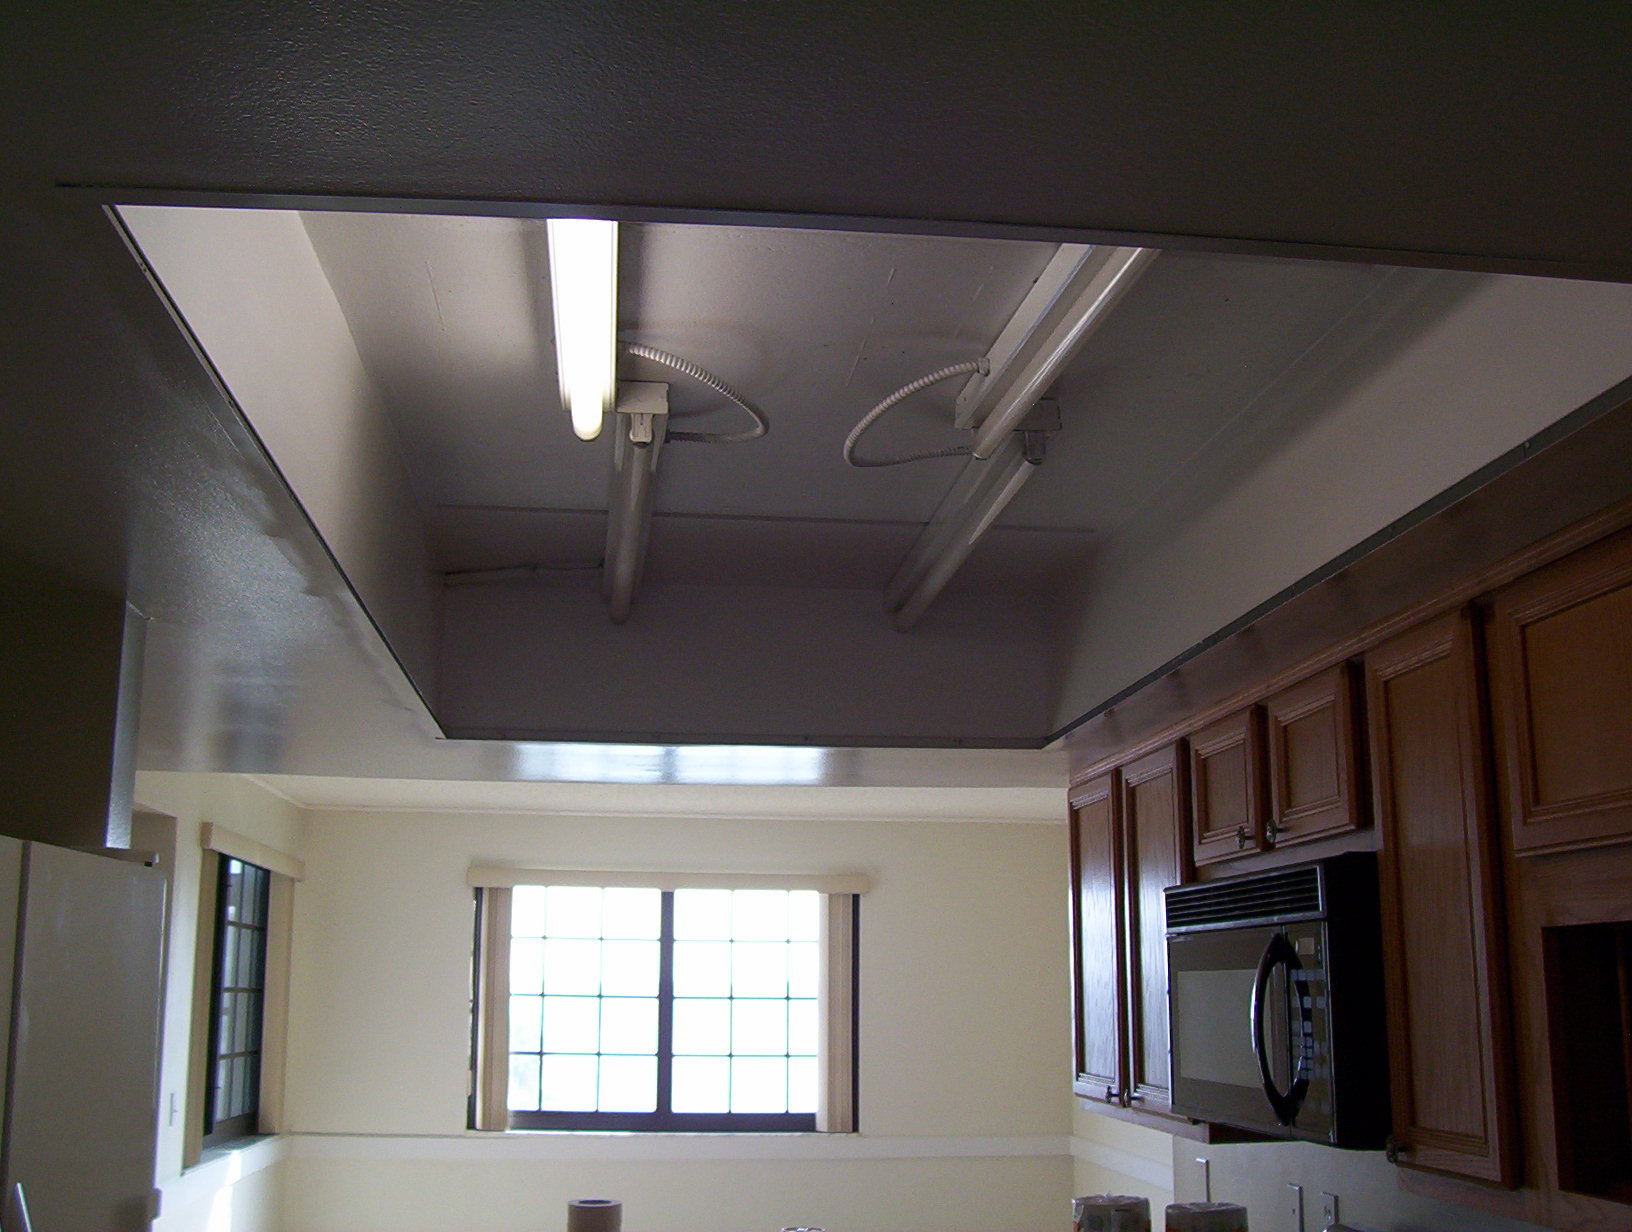 lights for kitchen ceiling design photos small kitchens what to do with my old drop lighting